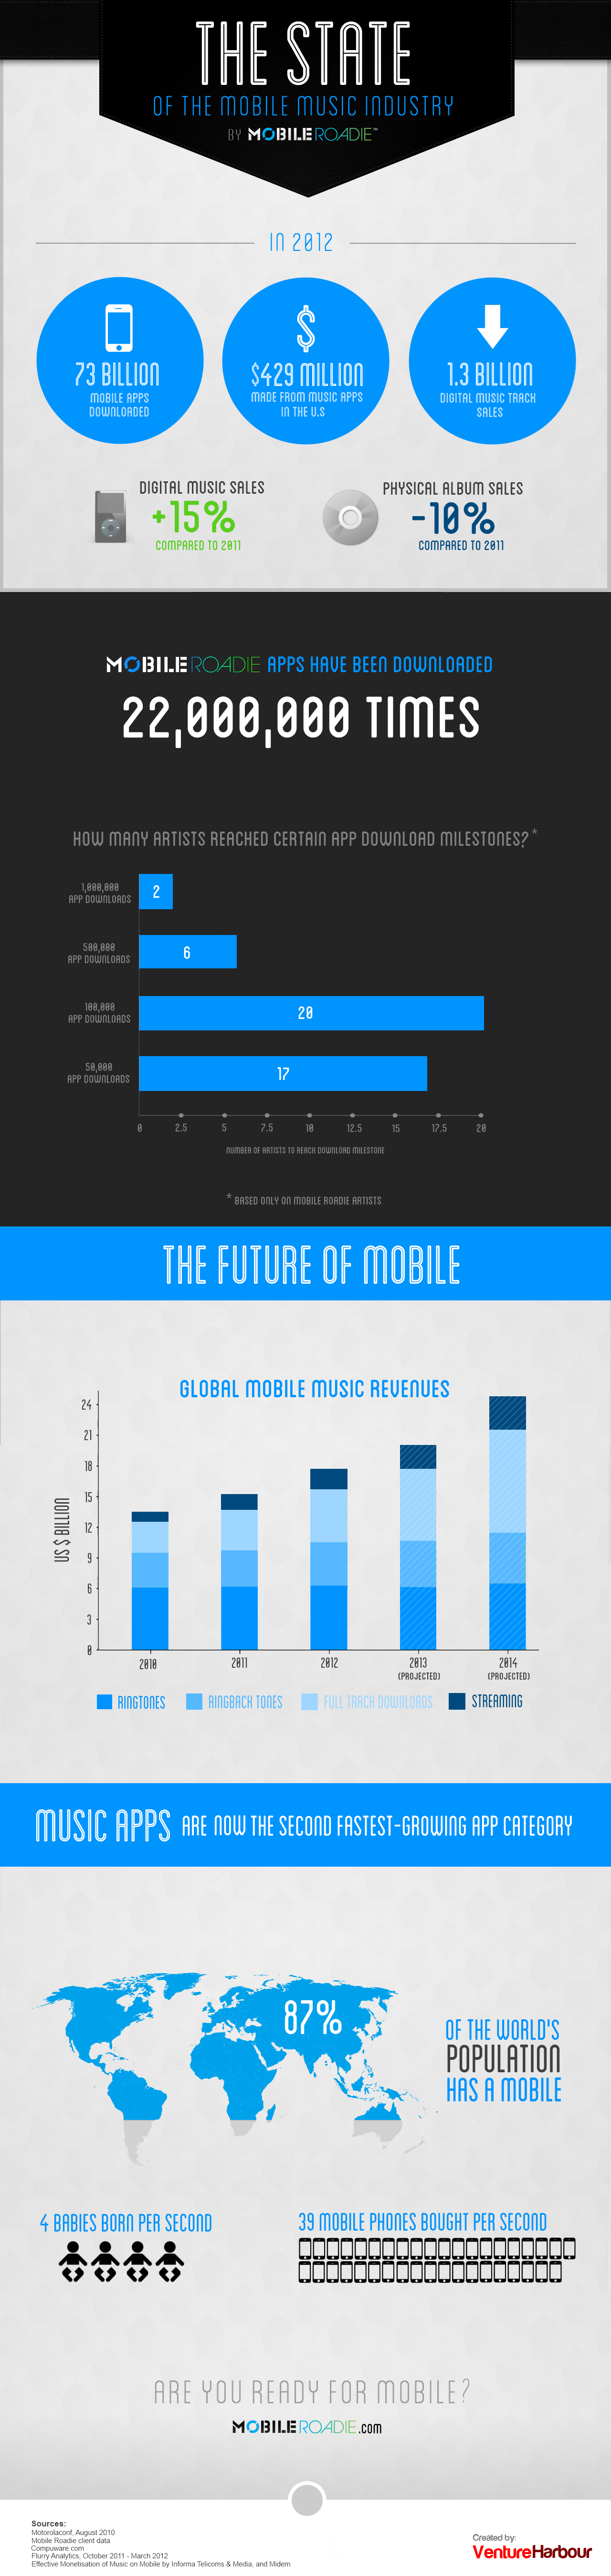 the state of the mobile music industry infographic on mobile music apps in 2013